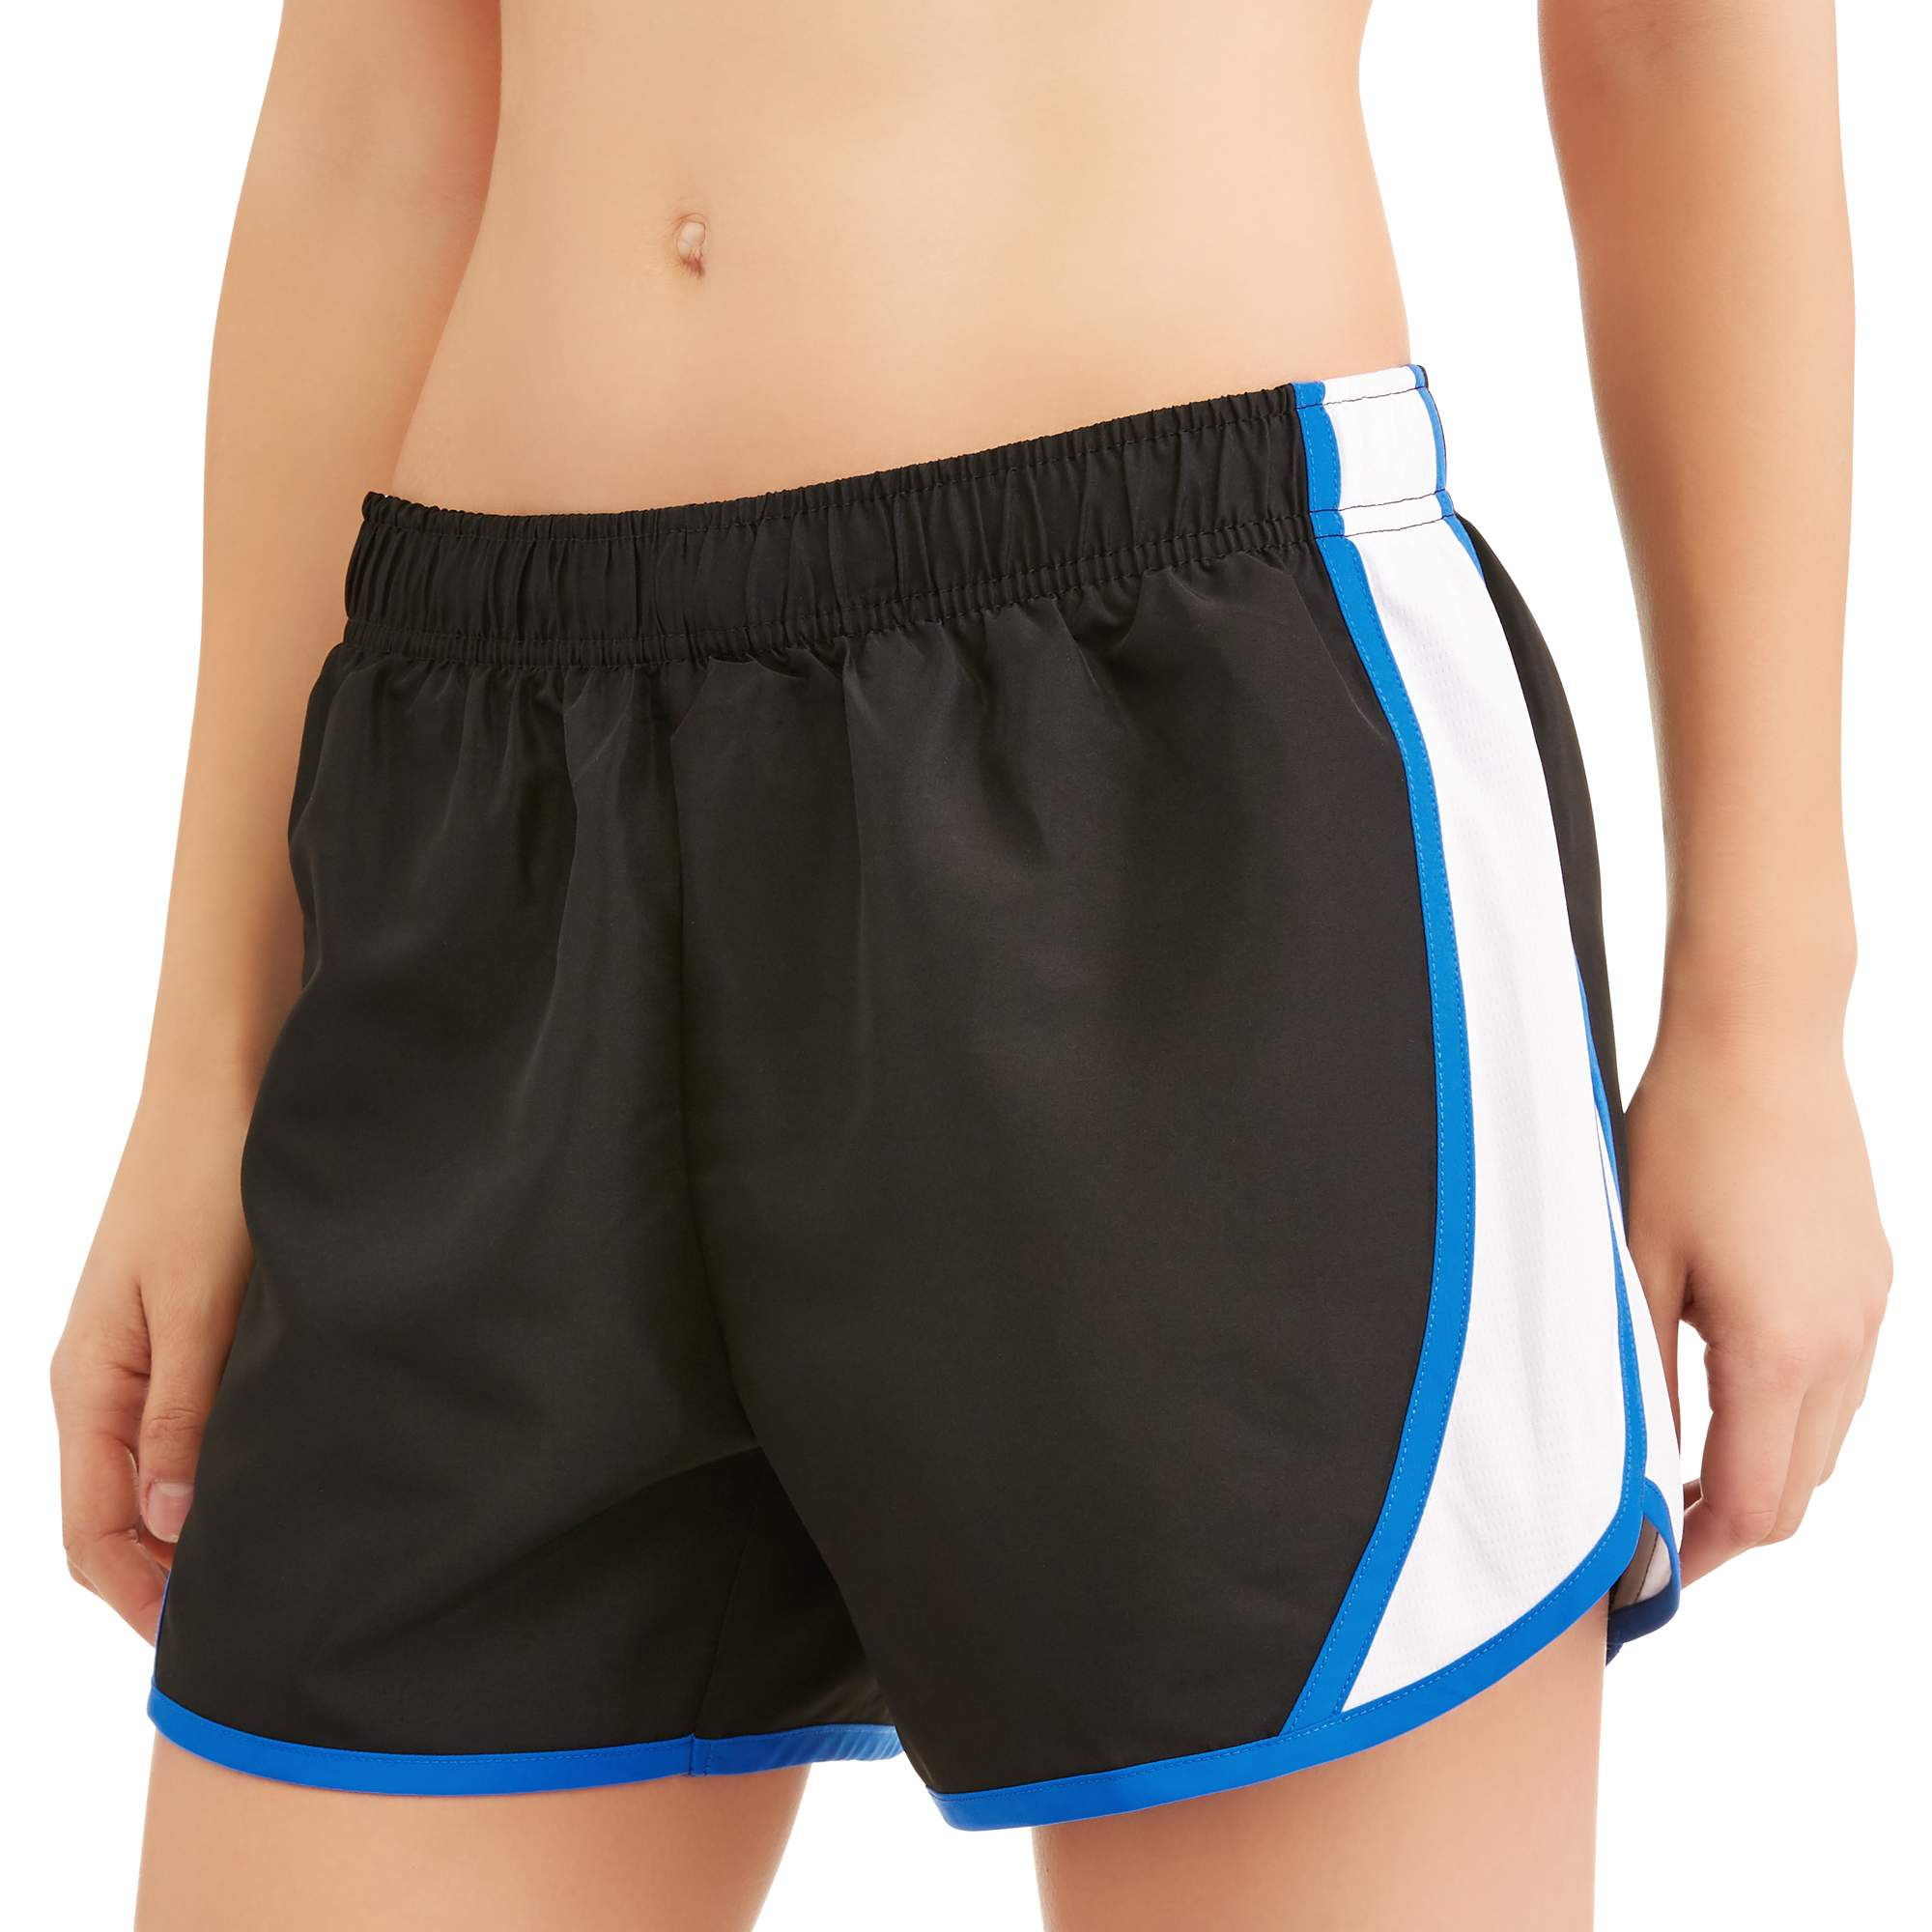 Women's Core Active Woven Running Short with Hidden Liner